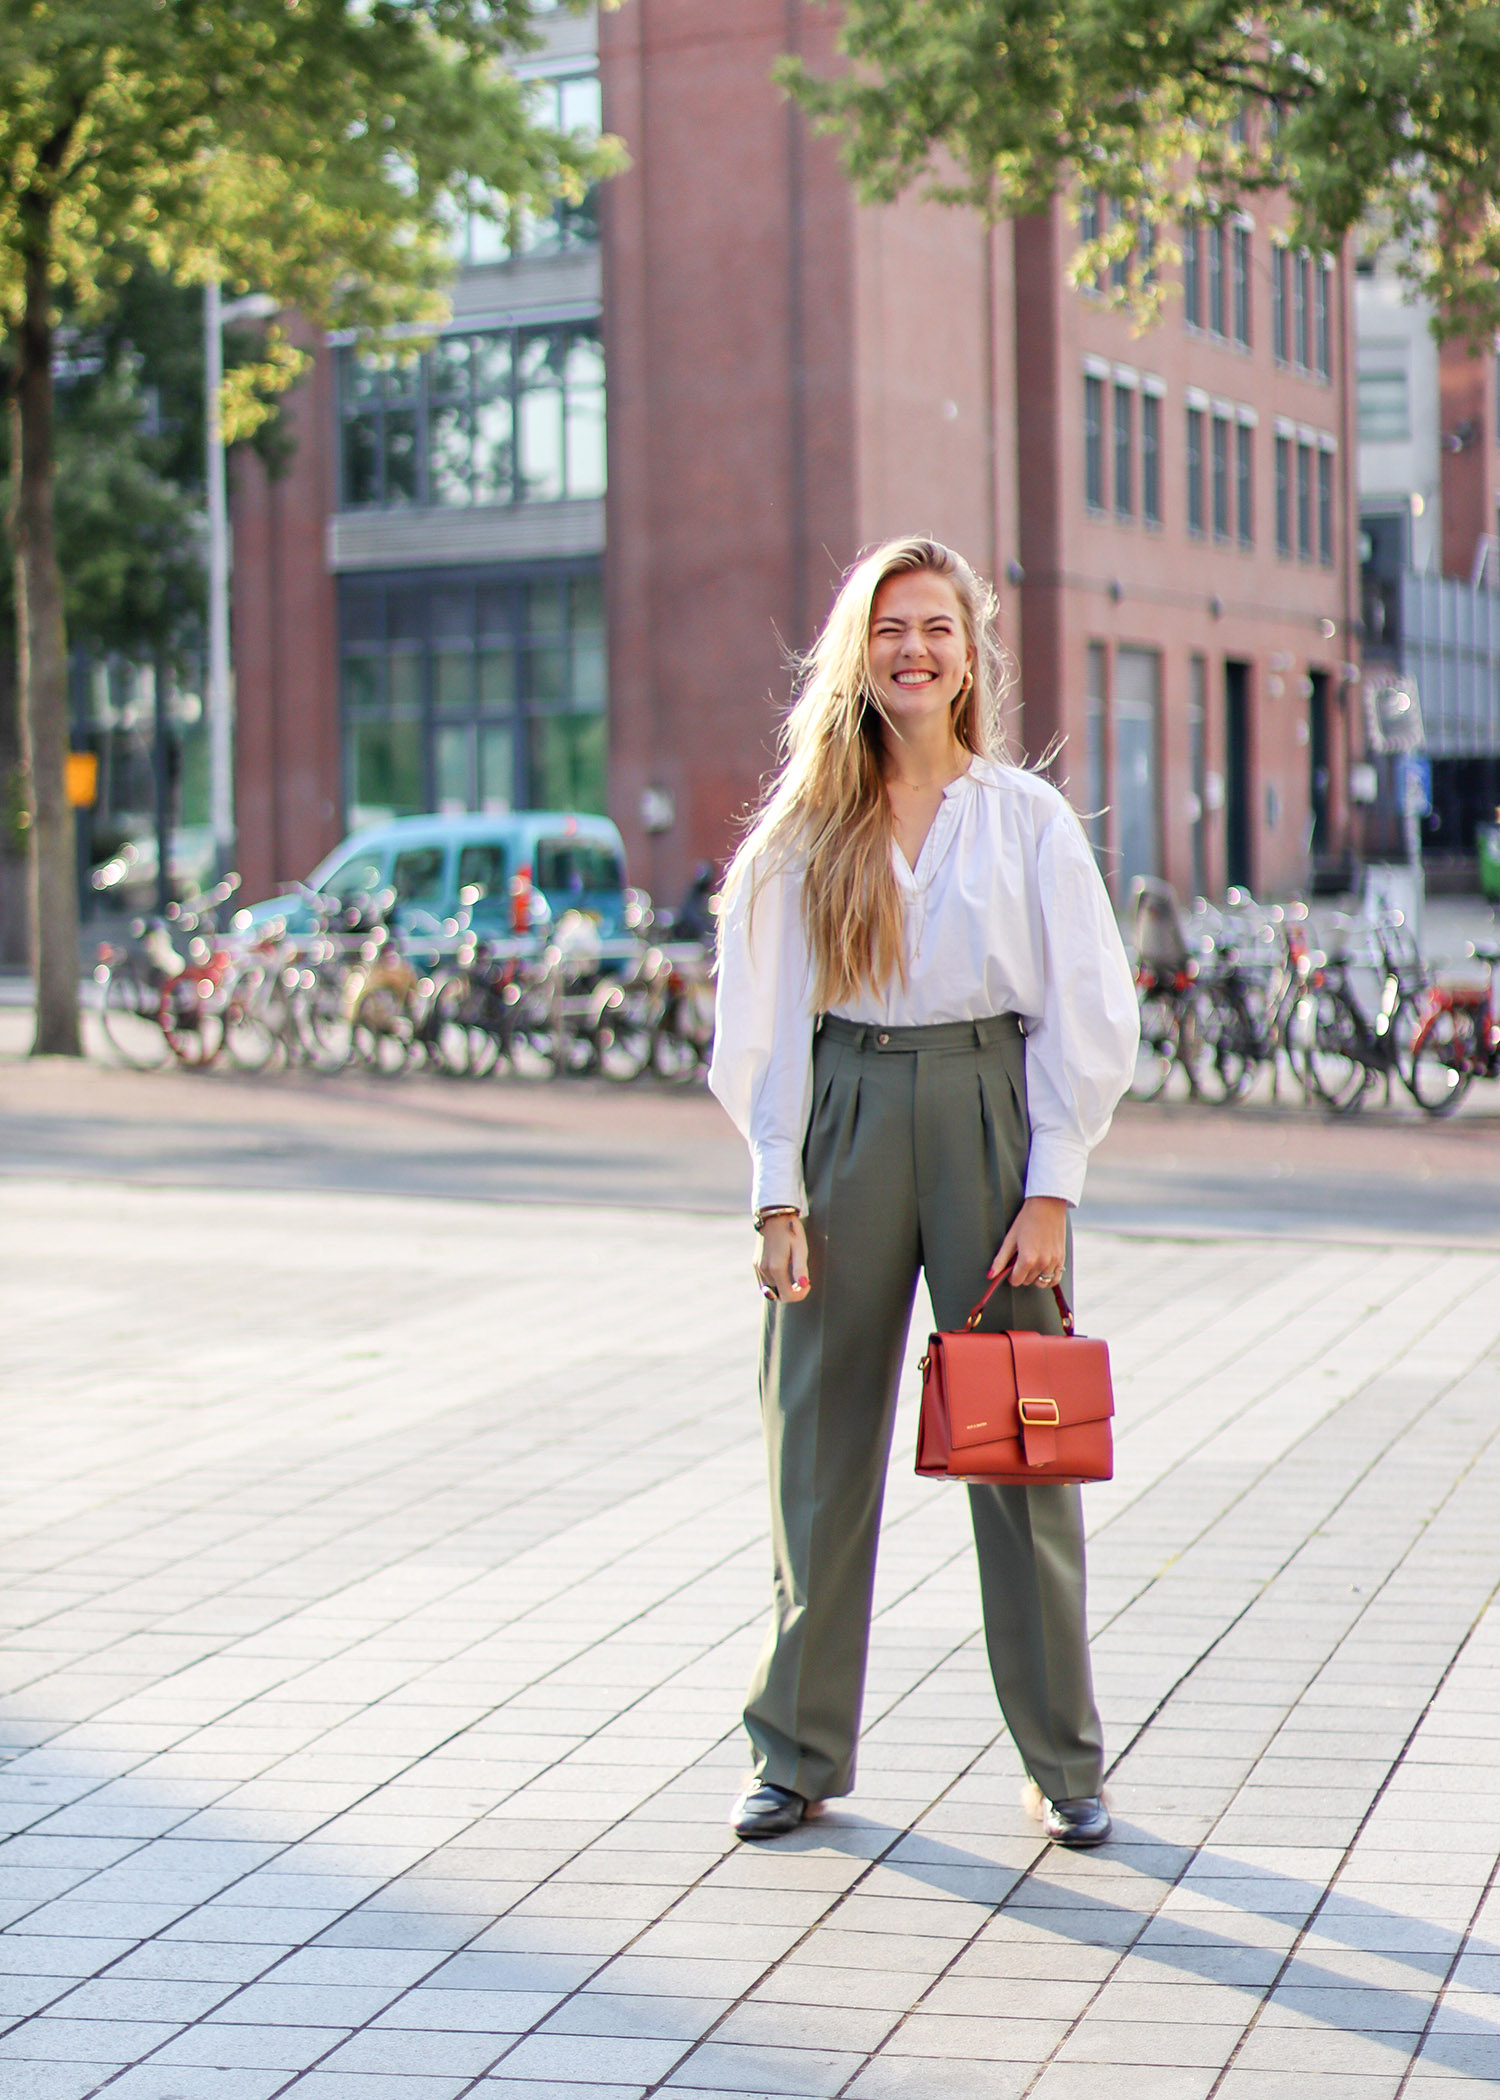 floortjeloves, alix & baxter, alix&baxter, Laurence bras, isabel marant, isabel marant etoile, gucci, smaak, smaak Amsterdam, sustainable, sustainable brand